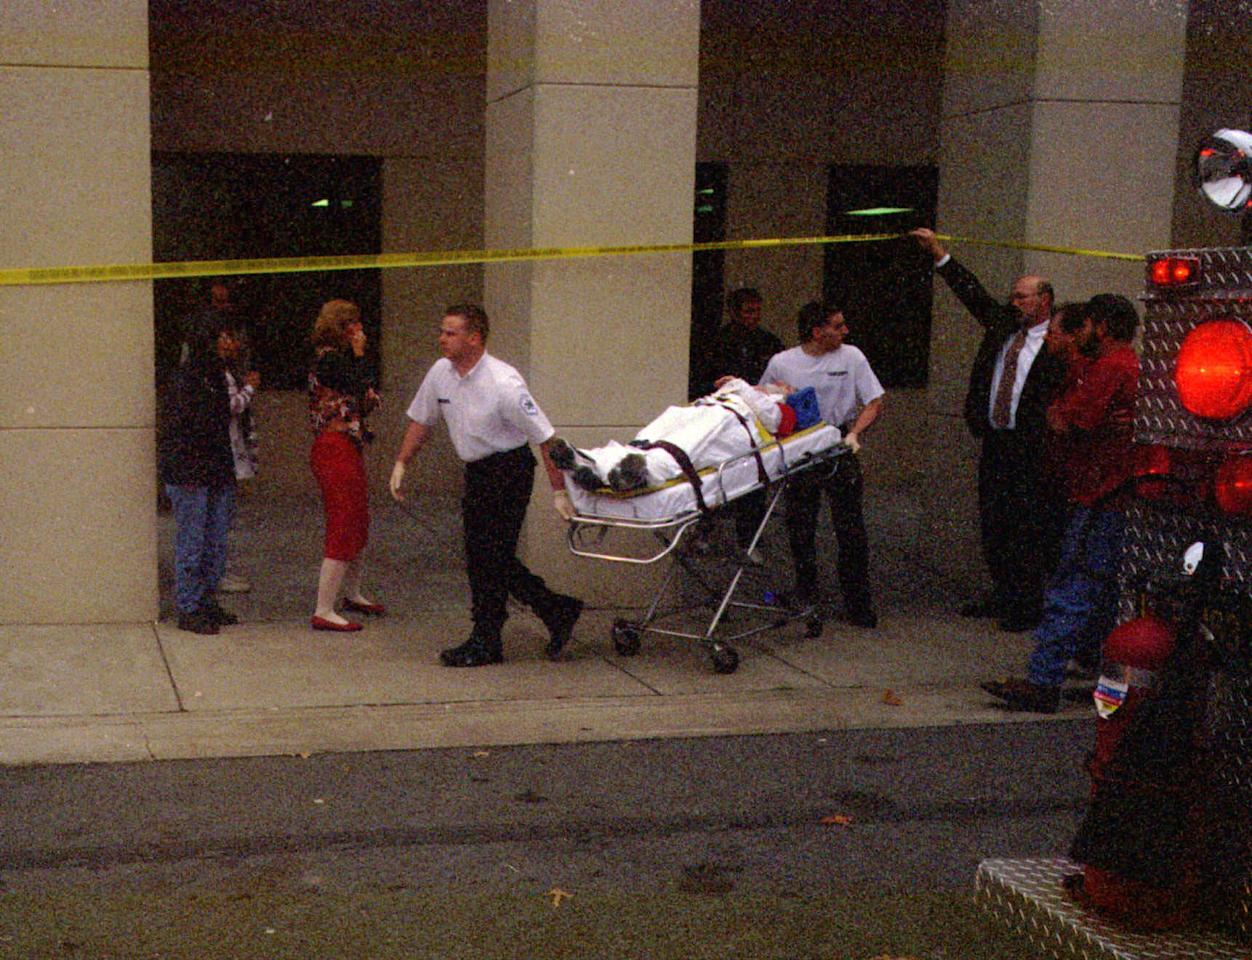 <p>Wounded student is rushed to an ambulance after the shooting. (Photo: Barkley Thieleman/The Paducah Sun/AP) </p>